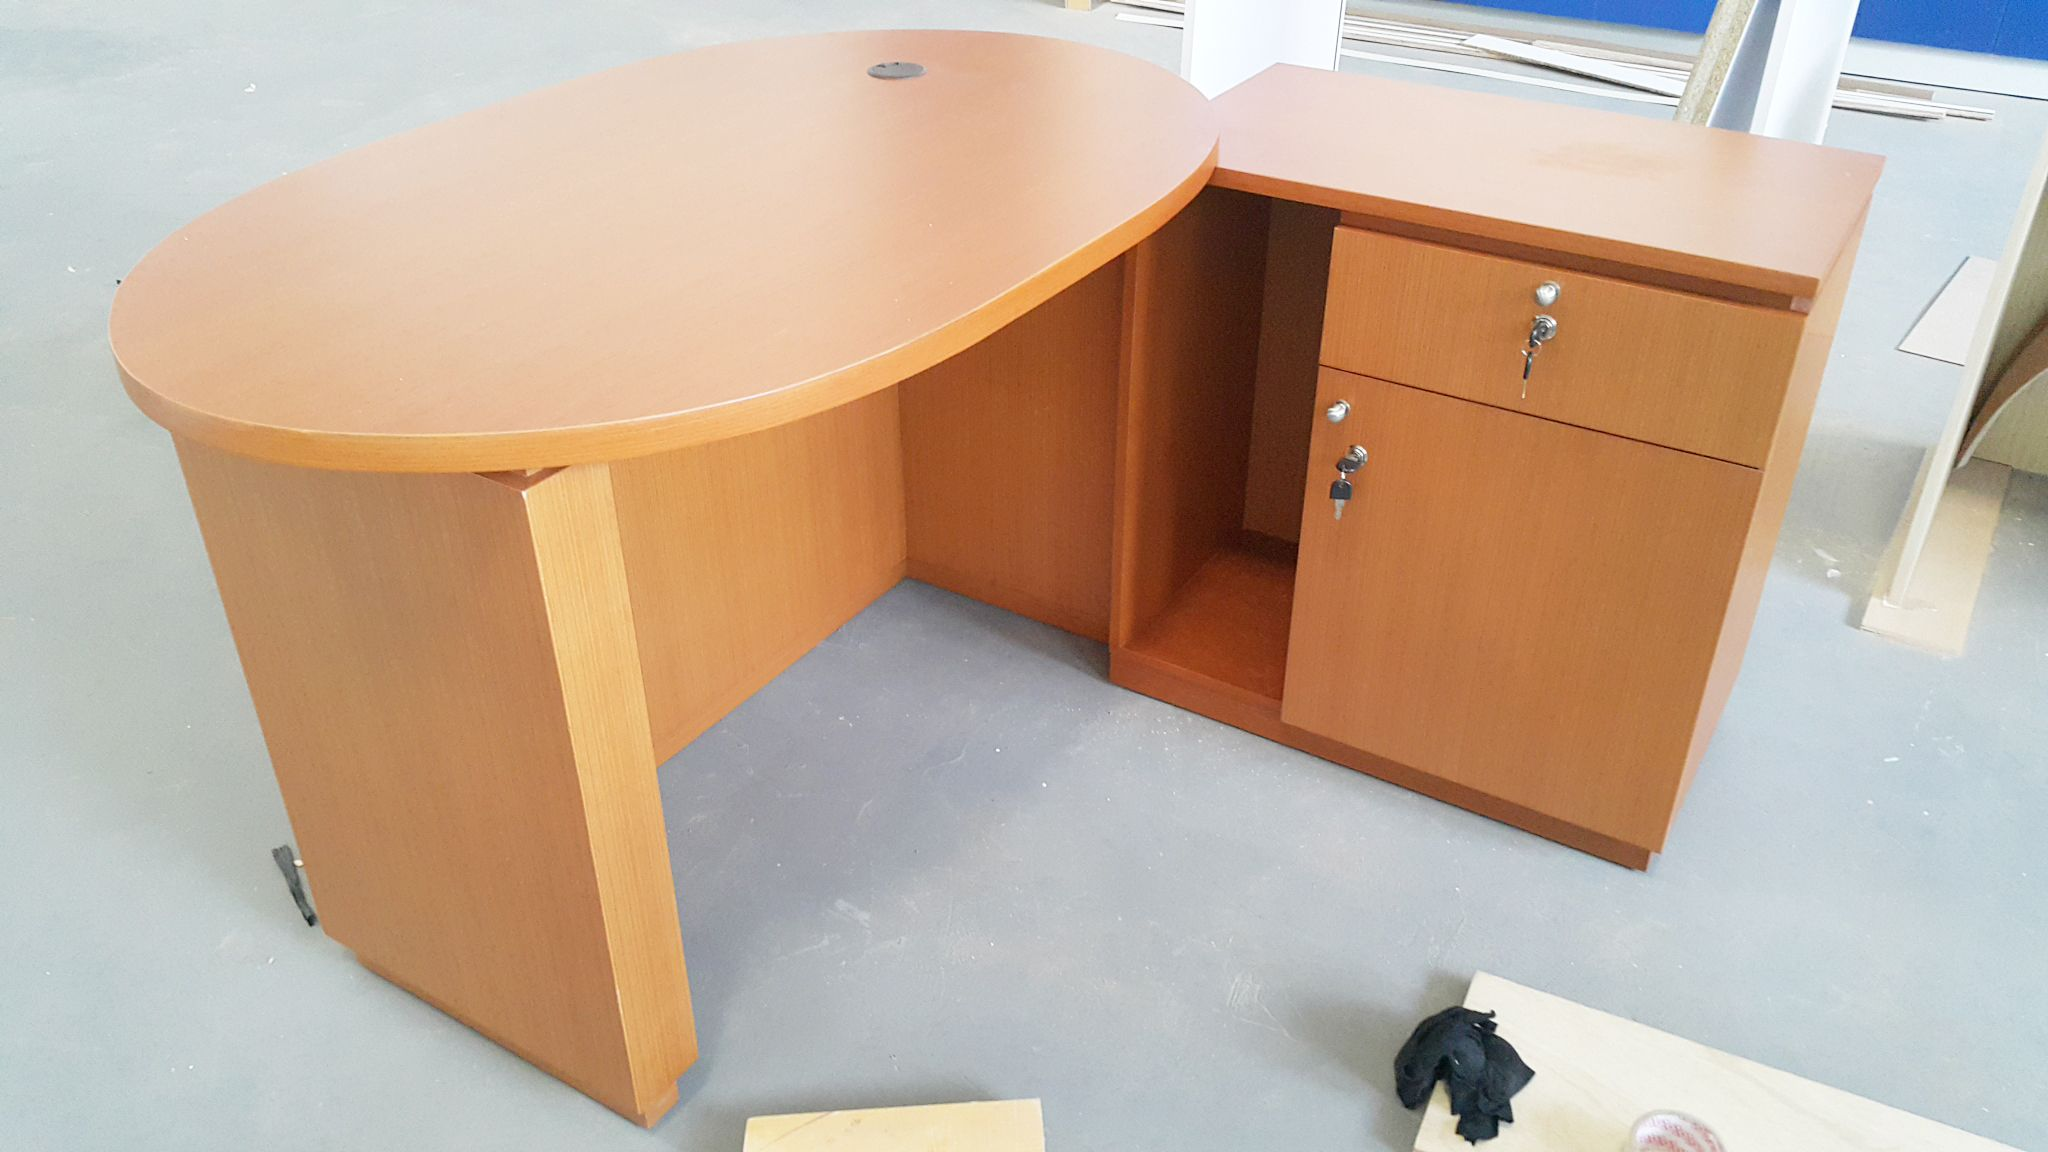 Customized furniture we are located in indonesia east java able to ship the furniture cutting all around the world custom design 62 81 3531 58989